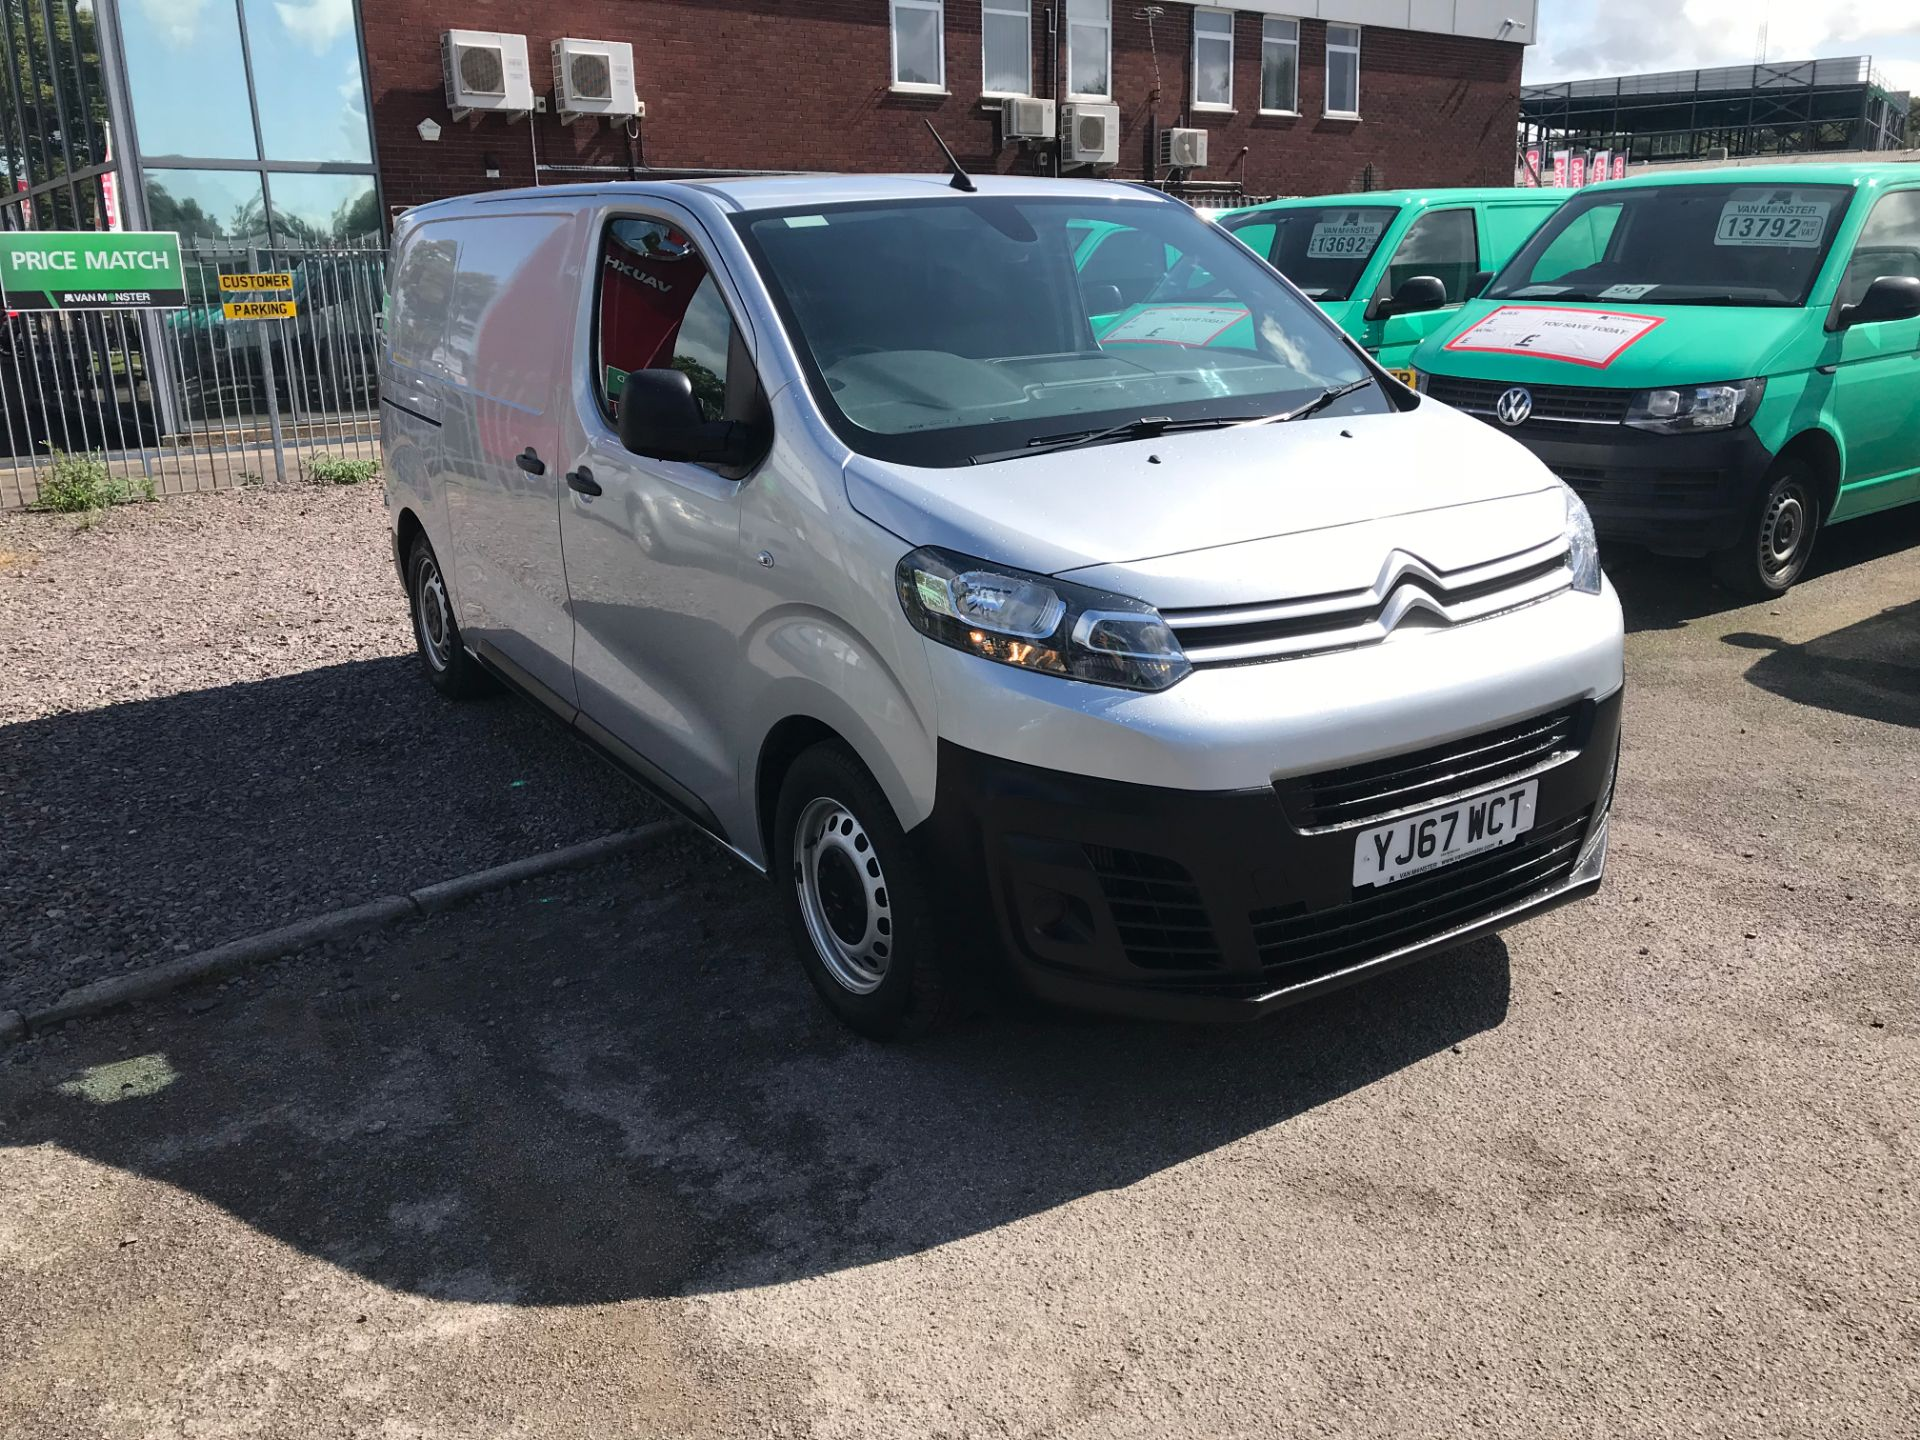 2017 Citroen Dispatch 1000 1.6 Bluehdi 95 Van Enterprise EURO 6 (YJ67WCT)